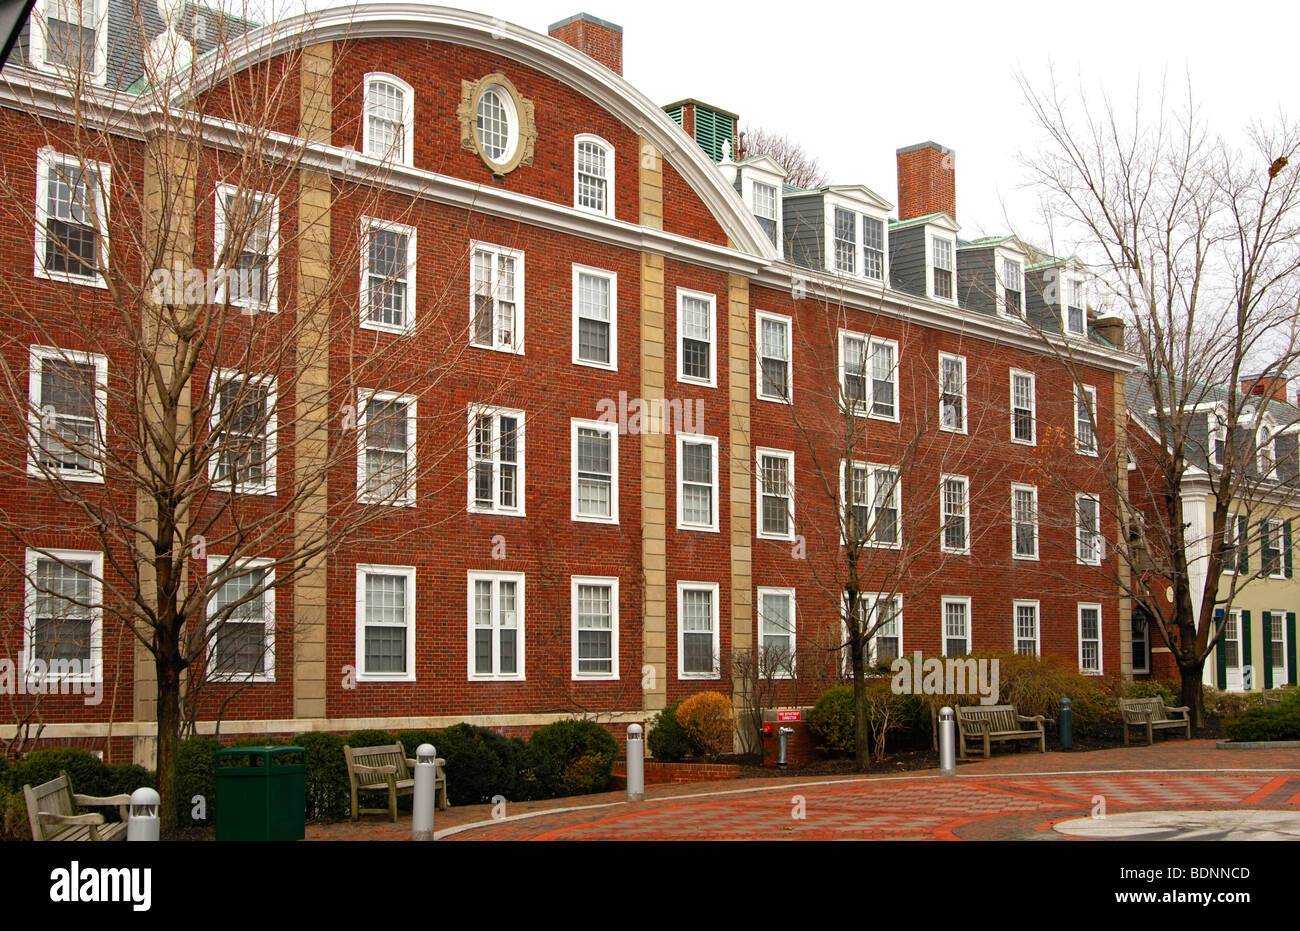 Students dorm on the campus of Harvard Business School, Harvard University, Allston, Boston, Massachusetts, USA - Stock Image